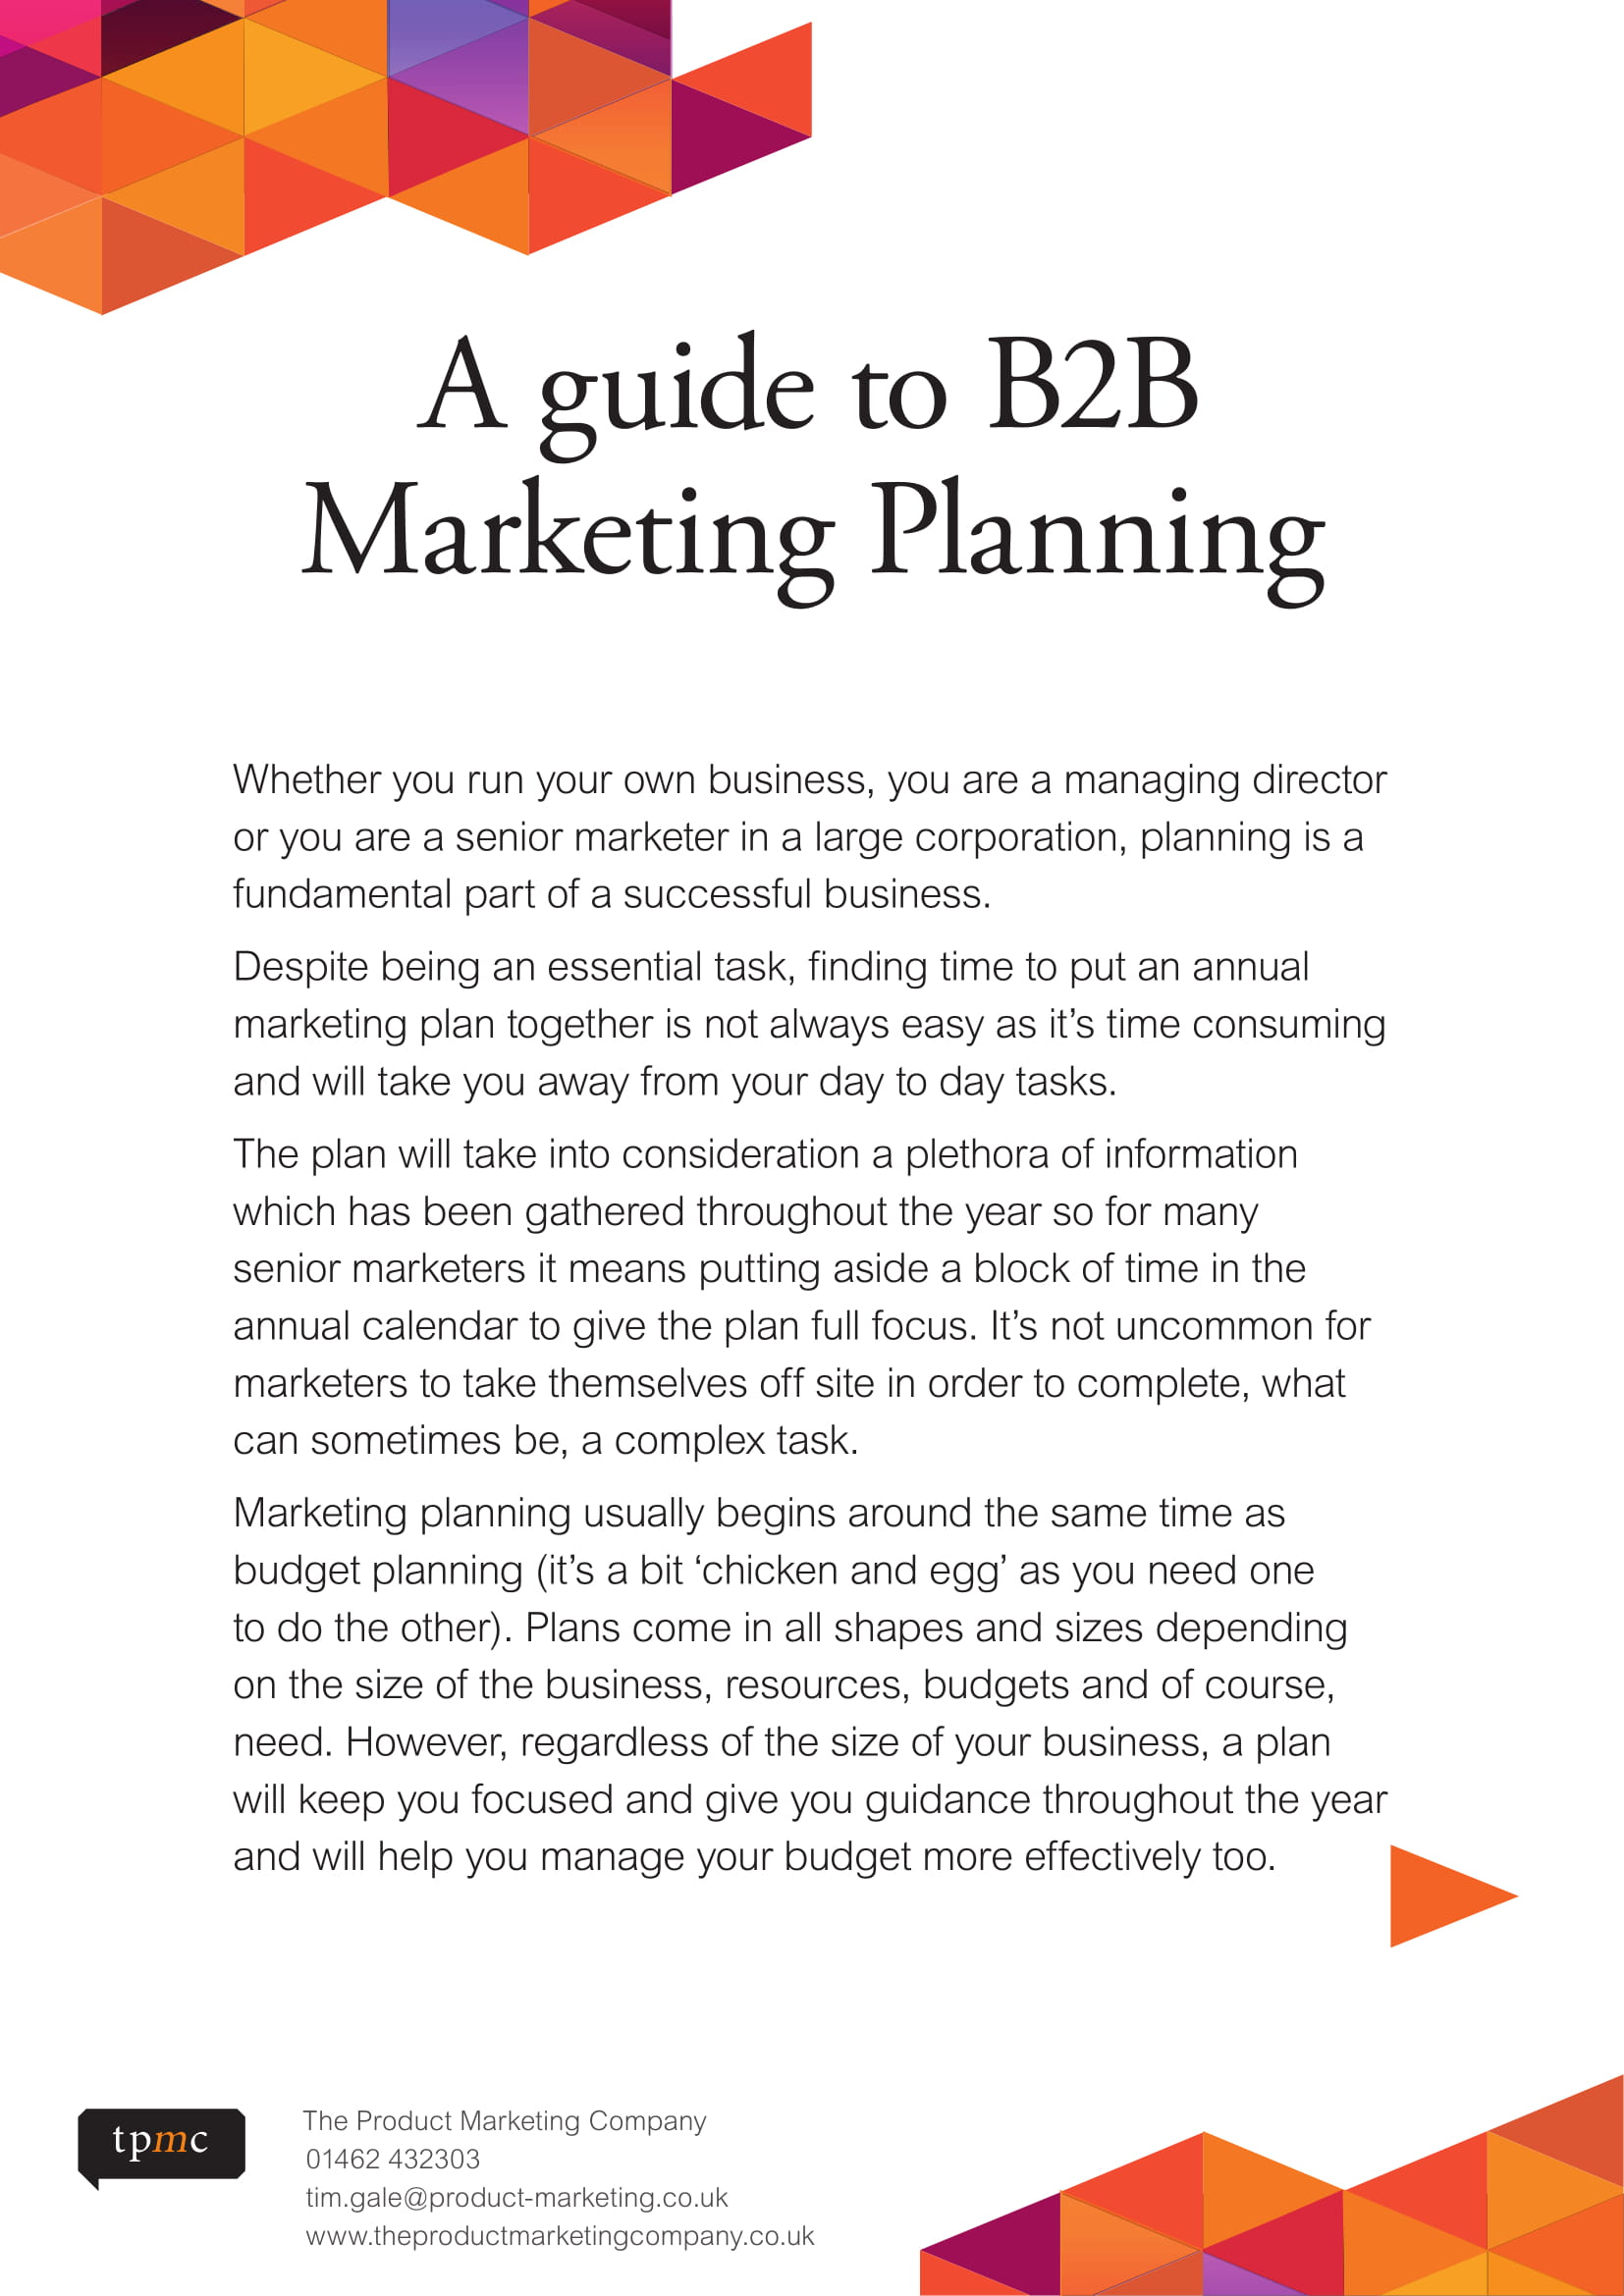 b2b marketing business plan guide example 1